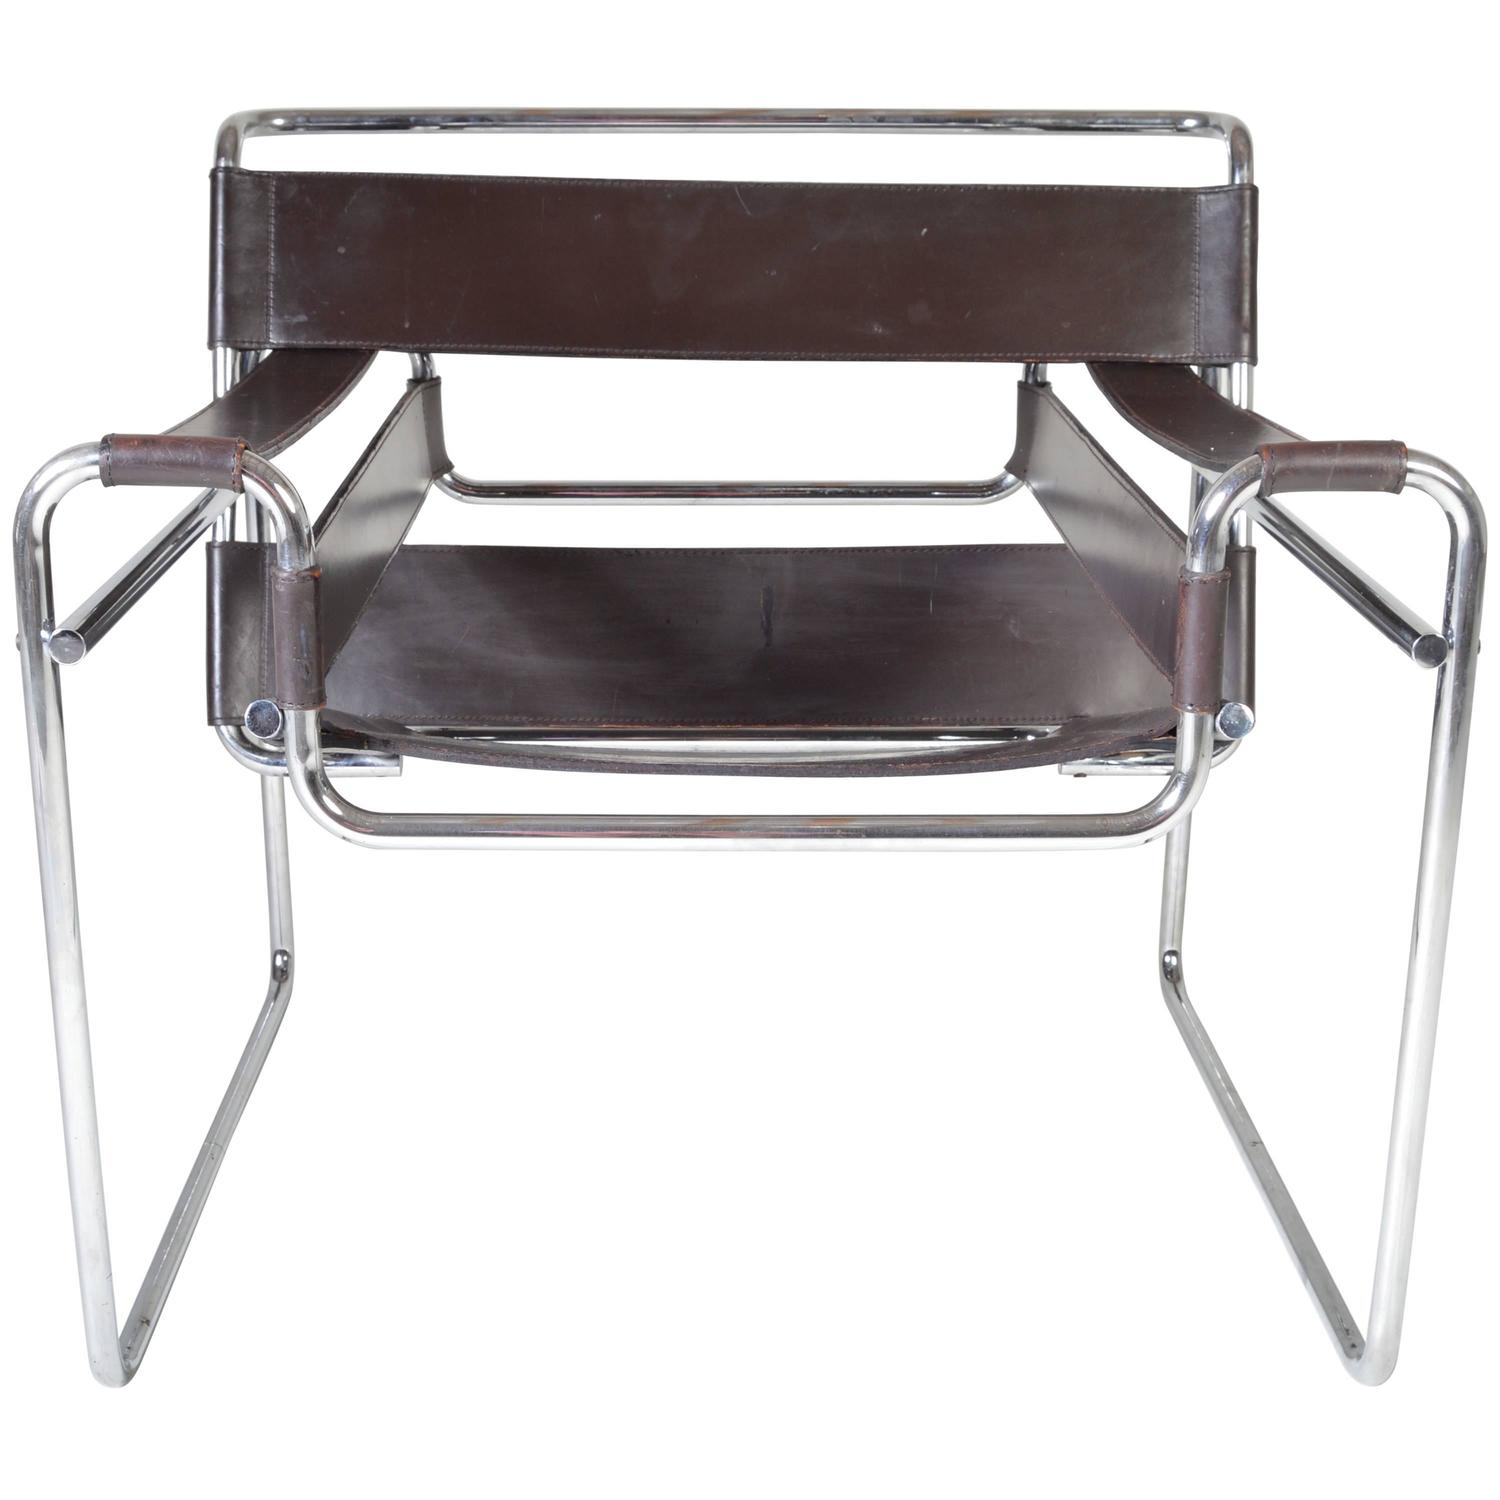 breuer chairs for sale chair posture back pain vintage 1960s wassily by marcel gavina